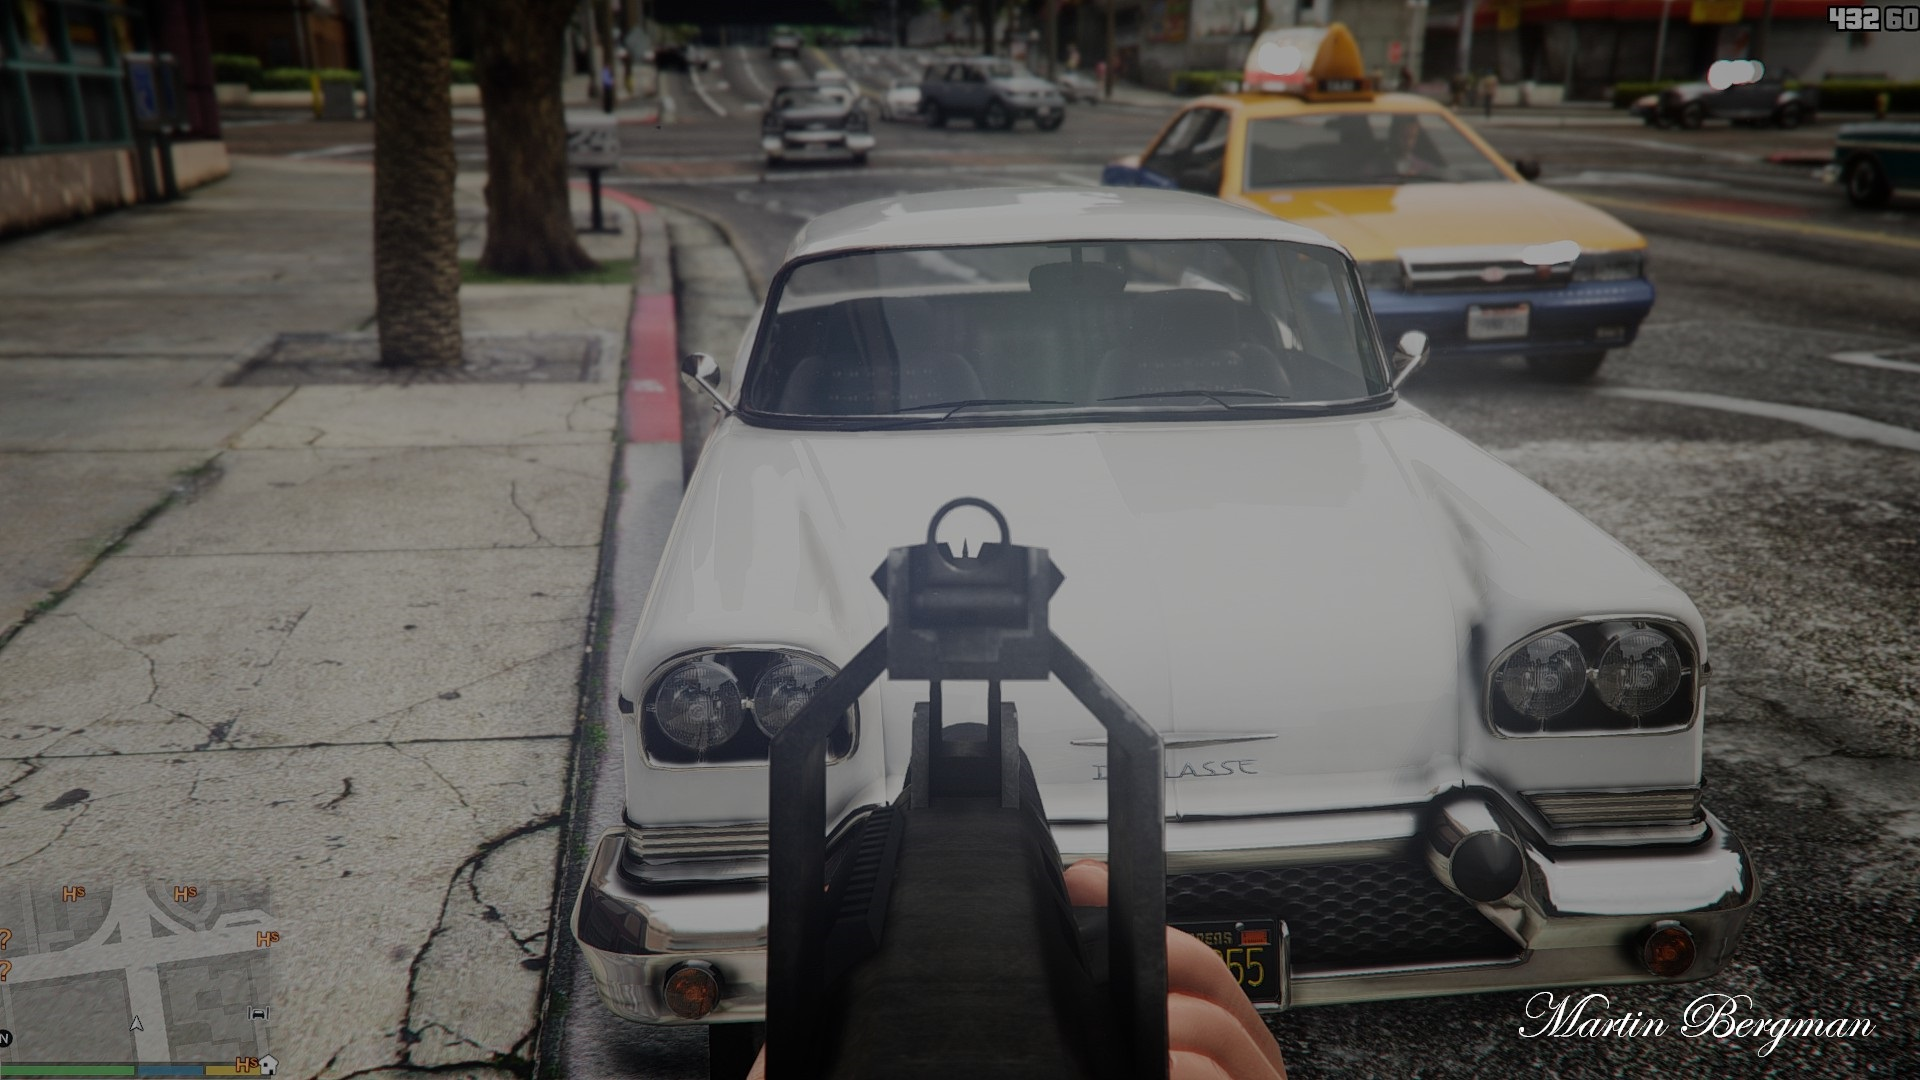 GTA Mod Makes Game Look Nearphotorealistic VG - Guy takes pictures showing just realistic grand theft auto v looks